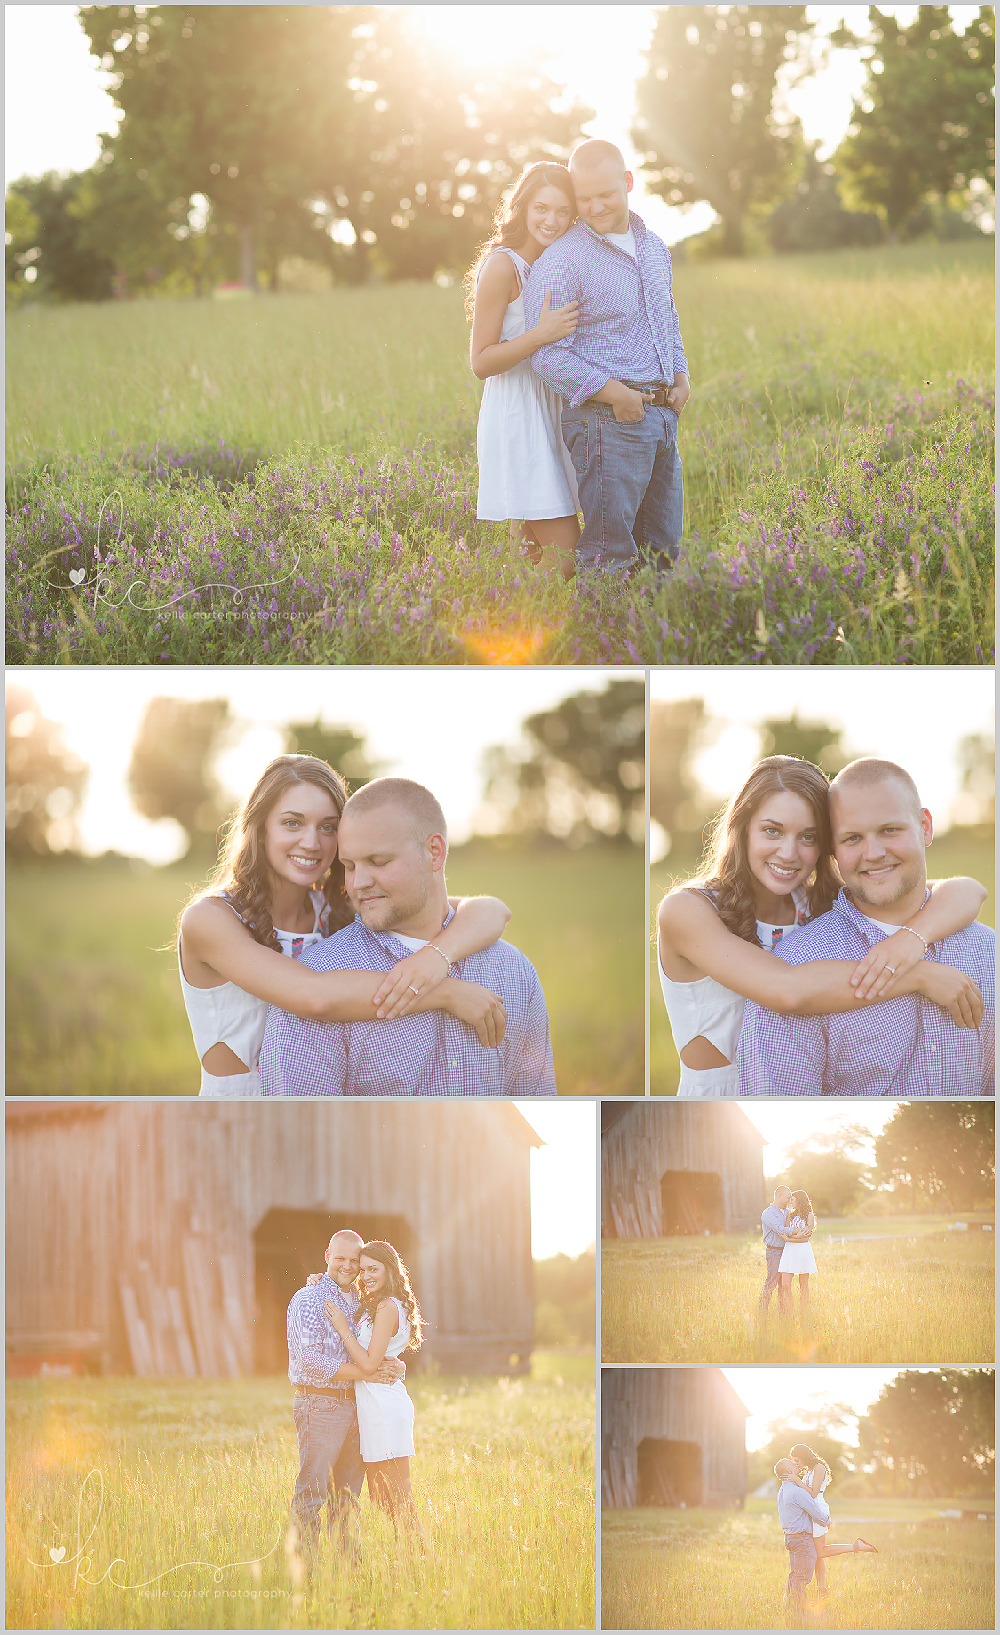 Kellie Carter Photography5 Maggie & Jacob are Getting Married {Wedding Photographer | Monticello, KY}